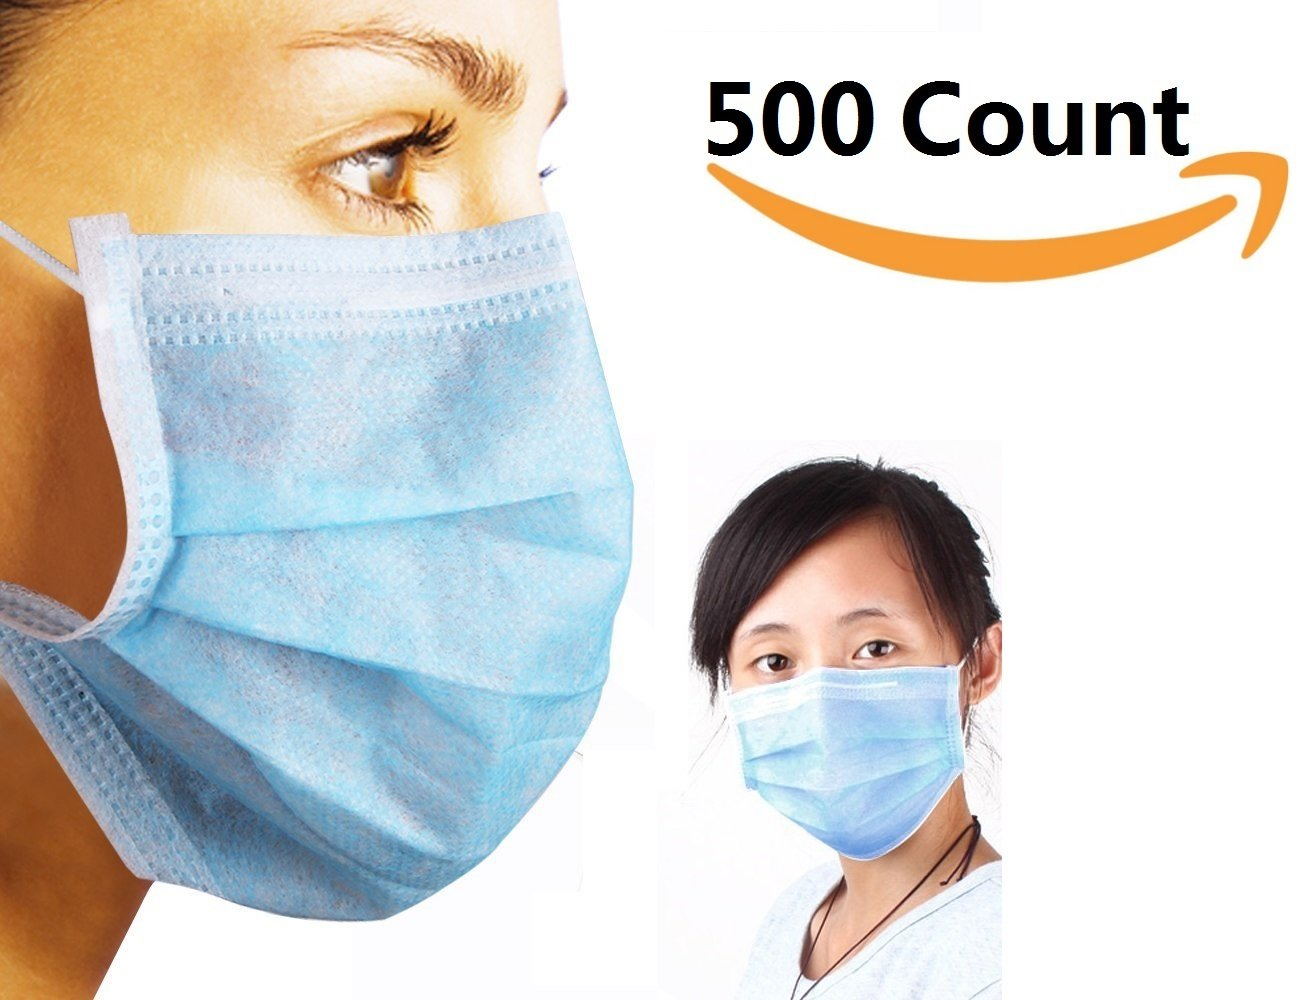 3-Ply Blue Commercial Dental Surgical Medical Disposable Earloop Face Masks . MADE IN USA ! 50/Box ( 500 Count ) by COOL ONE